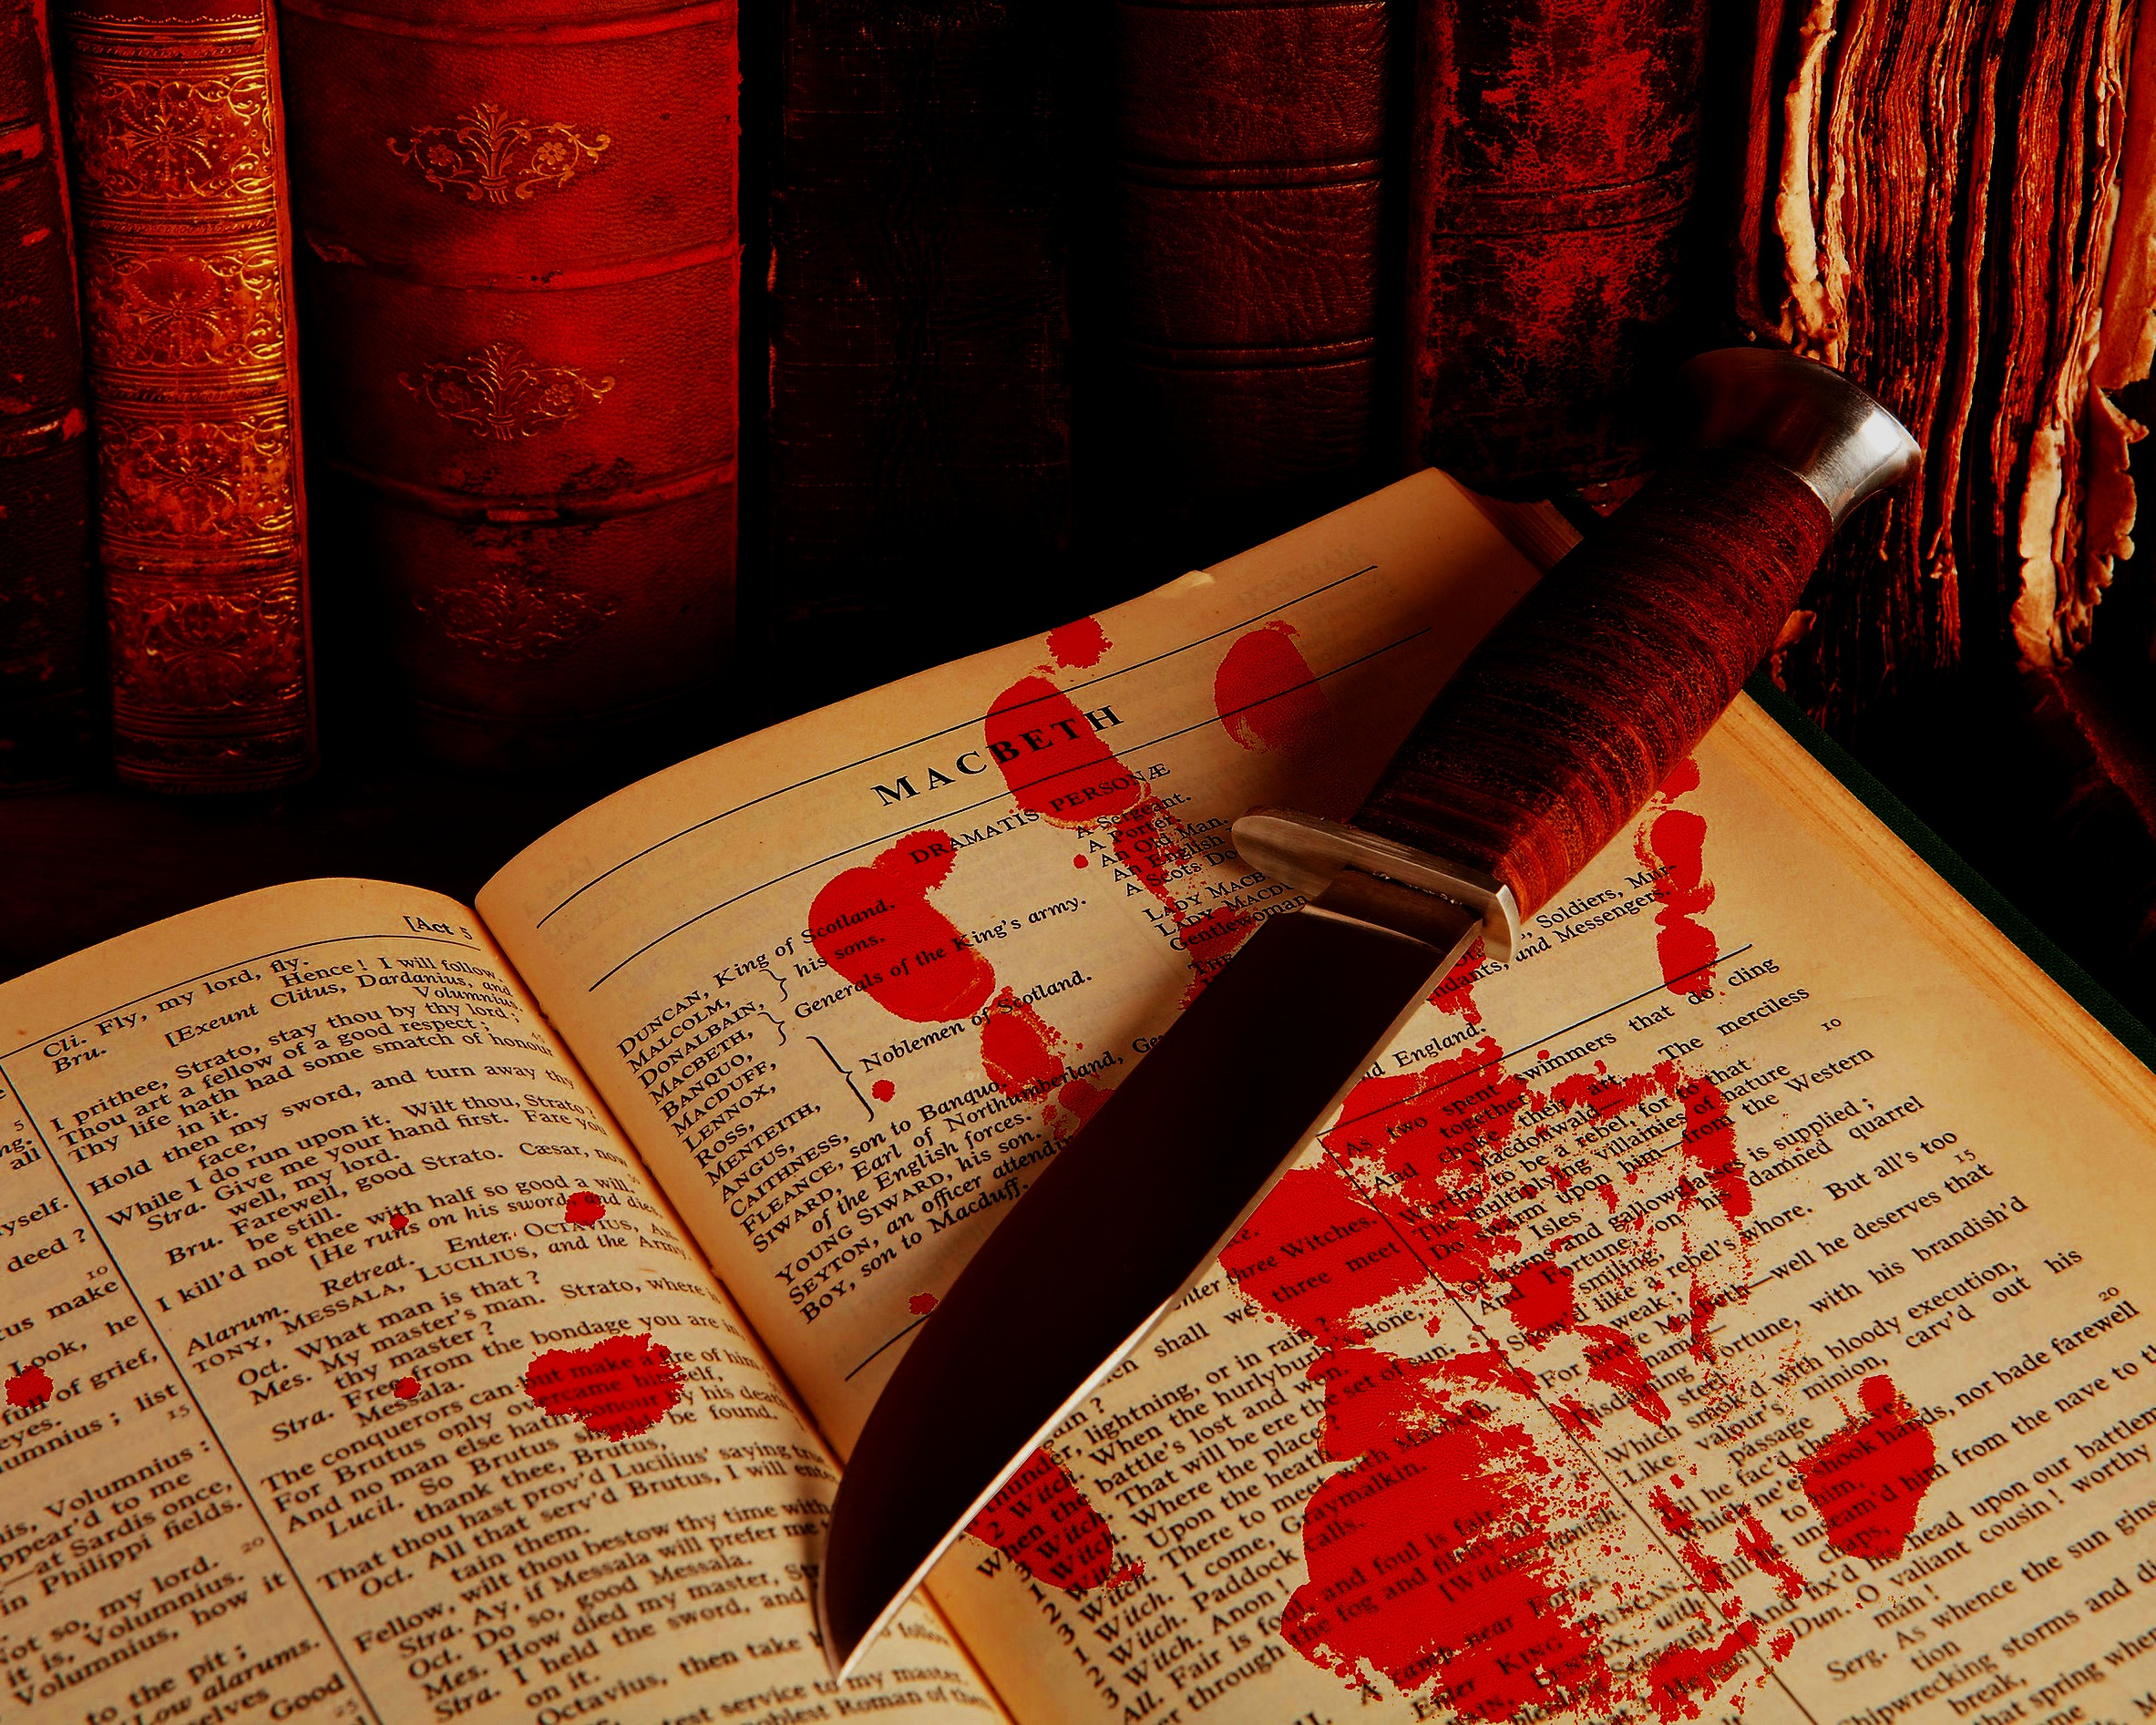 The Murder Method - The Murder Method is a five step process used to critique a piece of literature. It is optimized to provide a wide range of literary support, from grammatical to content analysis.